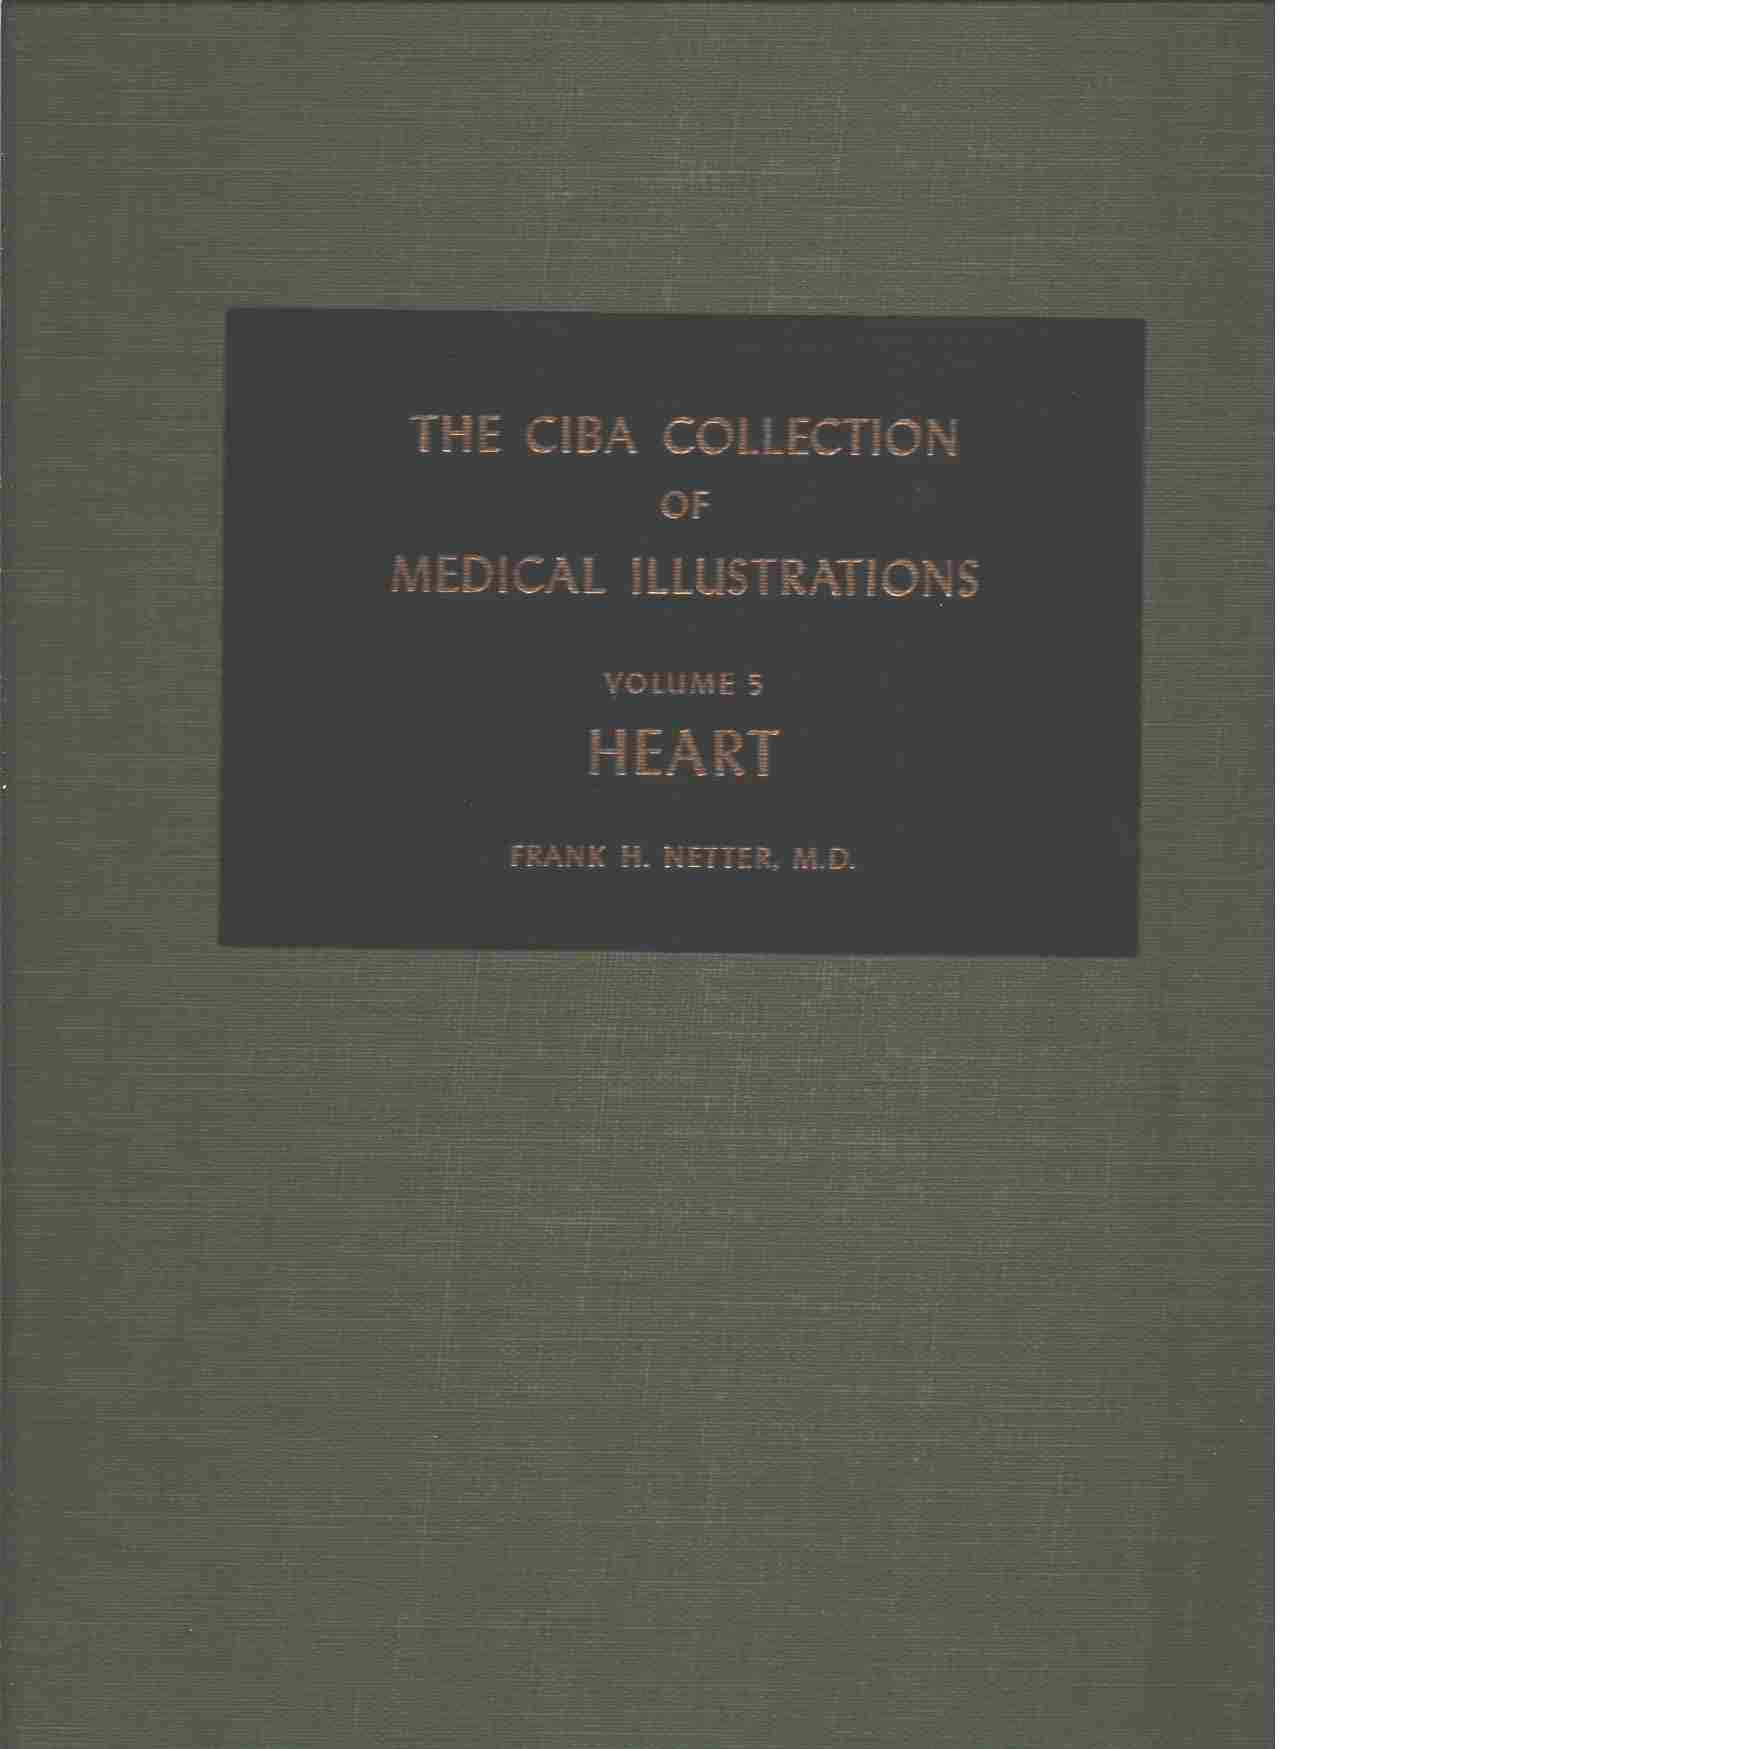 The Ciba Collection of Medical Illustrations, Volume 5 Digestive System Heart - Netter Frank H.